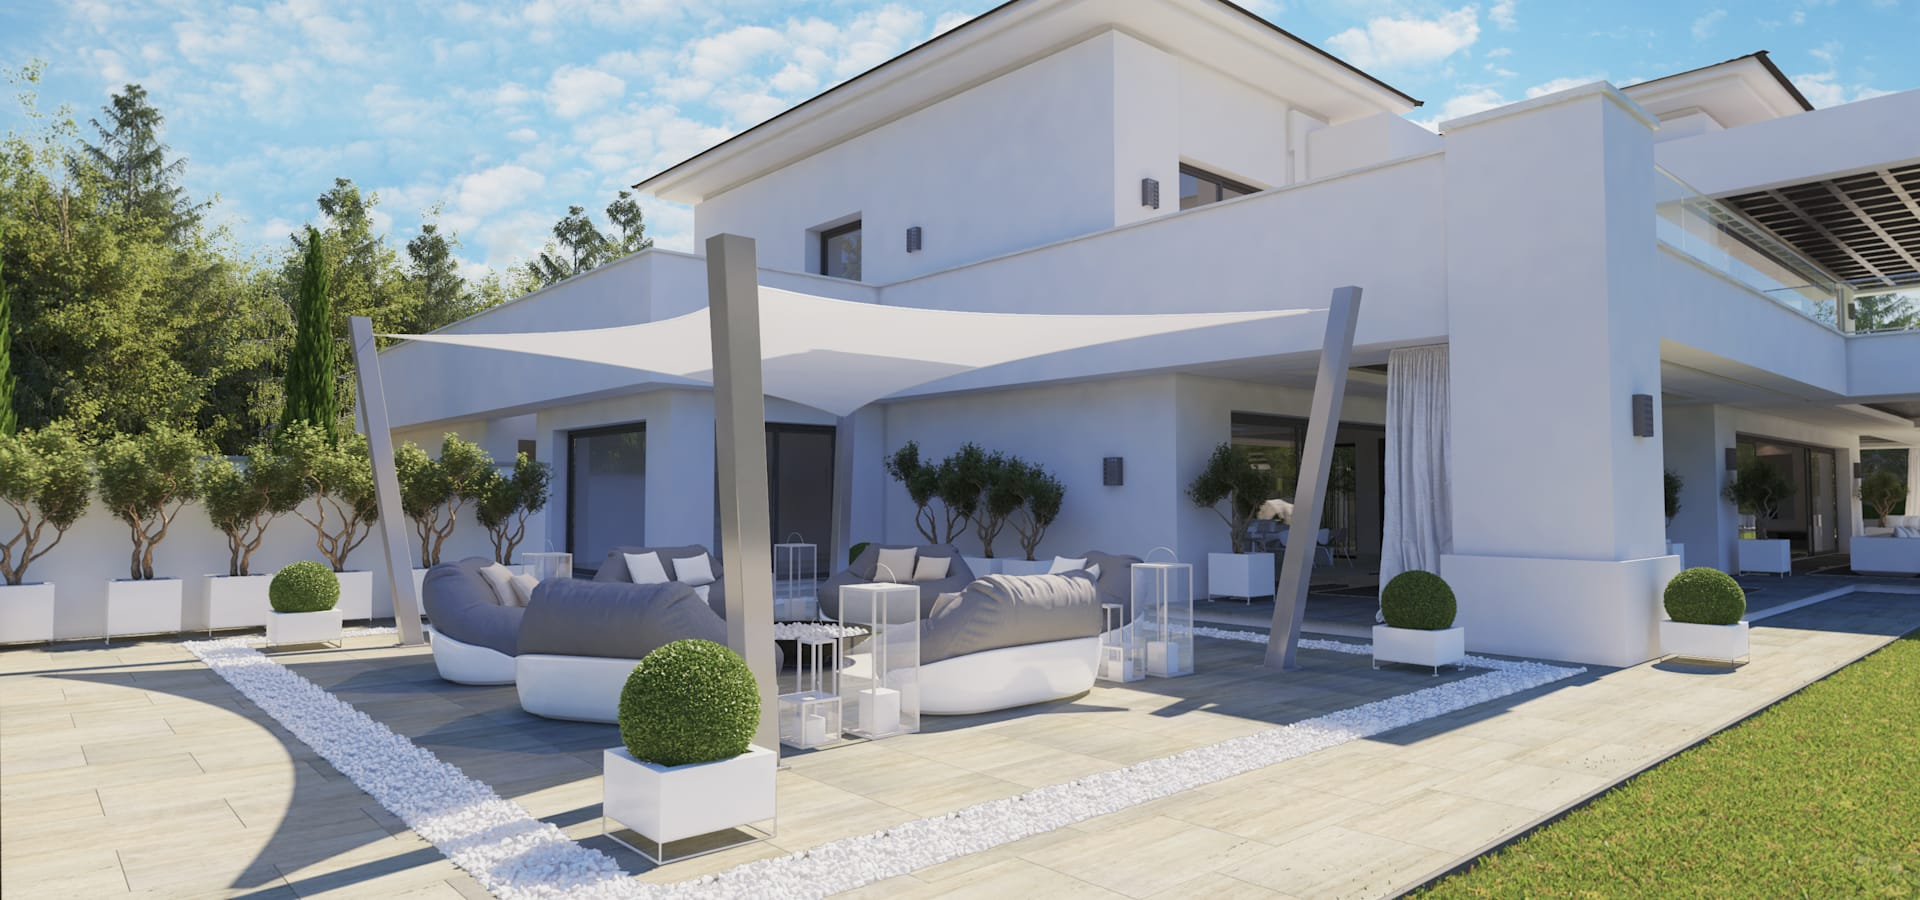 Do ana sotogrande de ark arquitectos homify for Arquitecto sotogrande